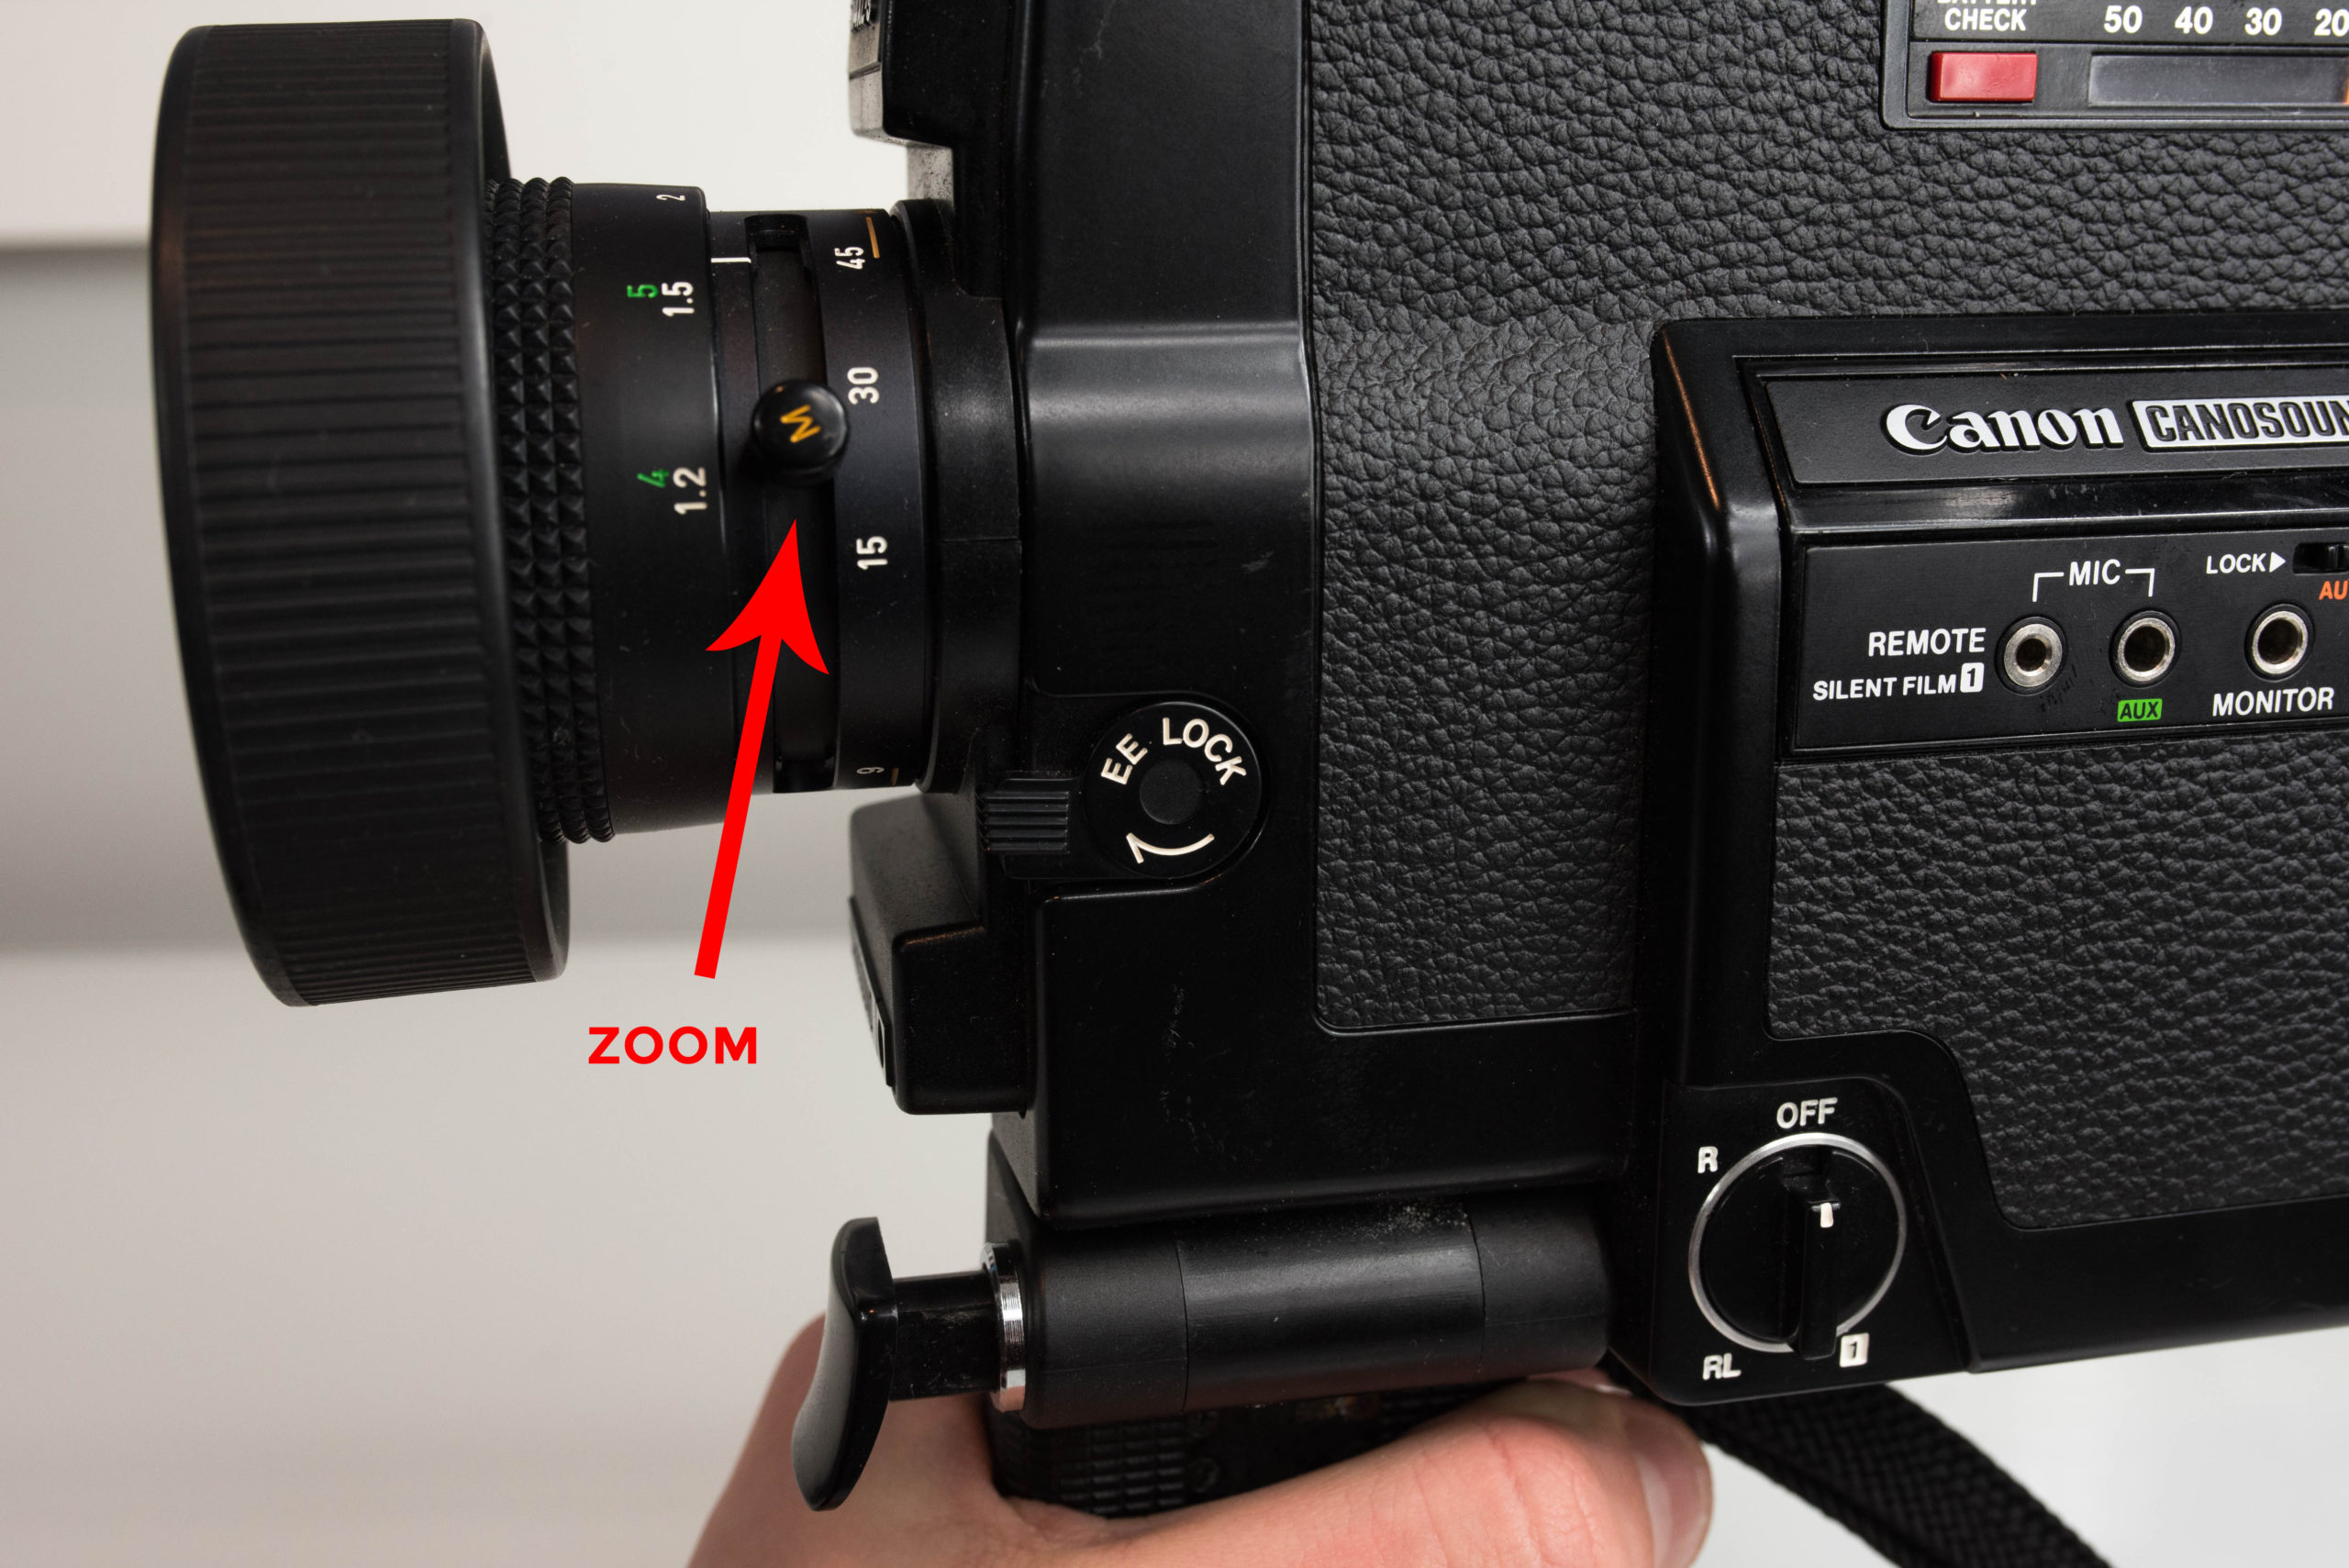 Zoom - FRAMES PER SECOND SWITCH - Super 8 Film Camera - Canon Canosound 514 XL-S - FilterGrade